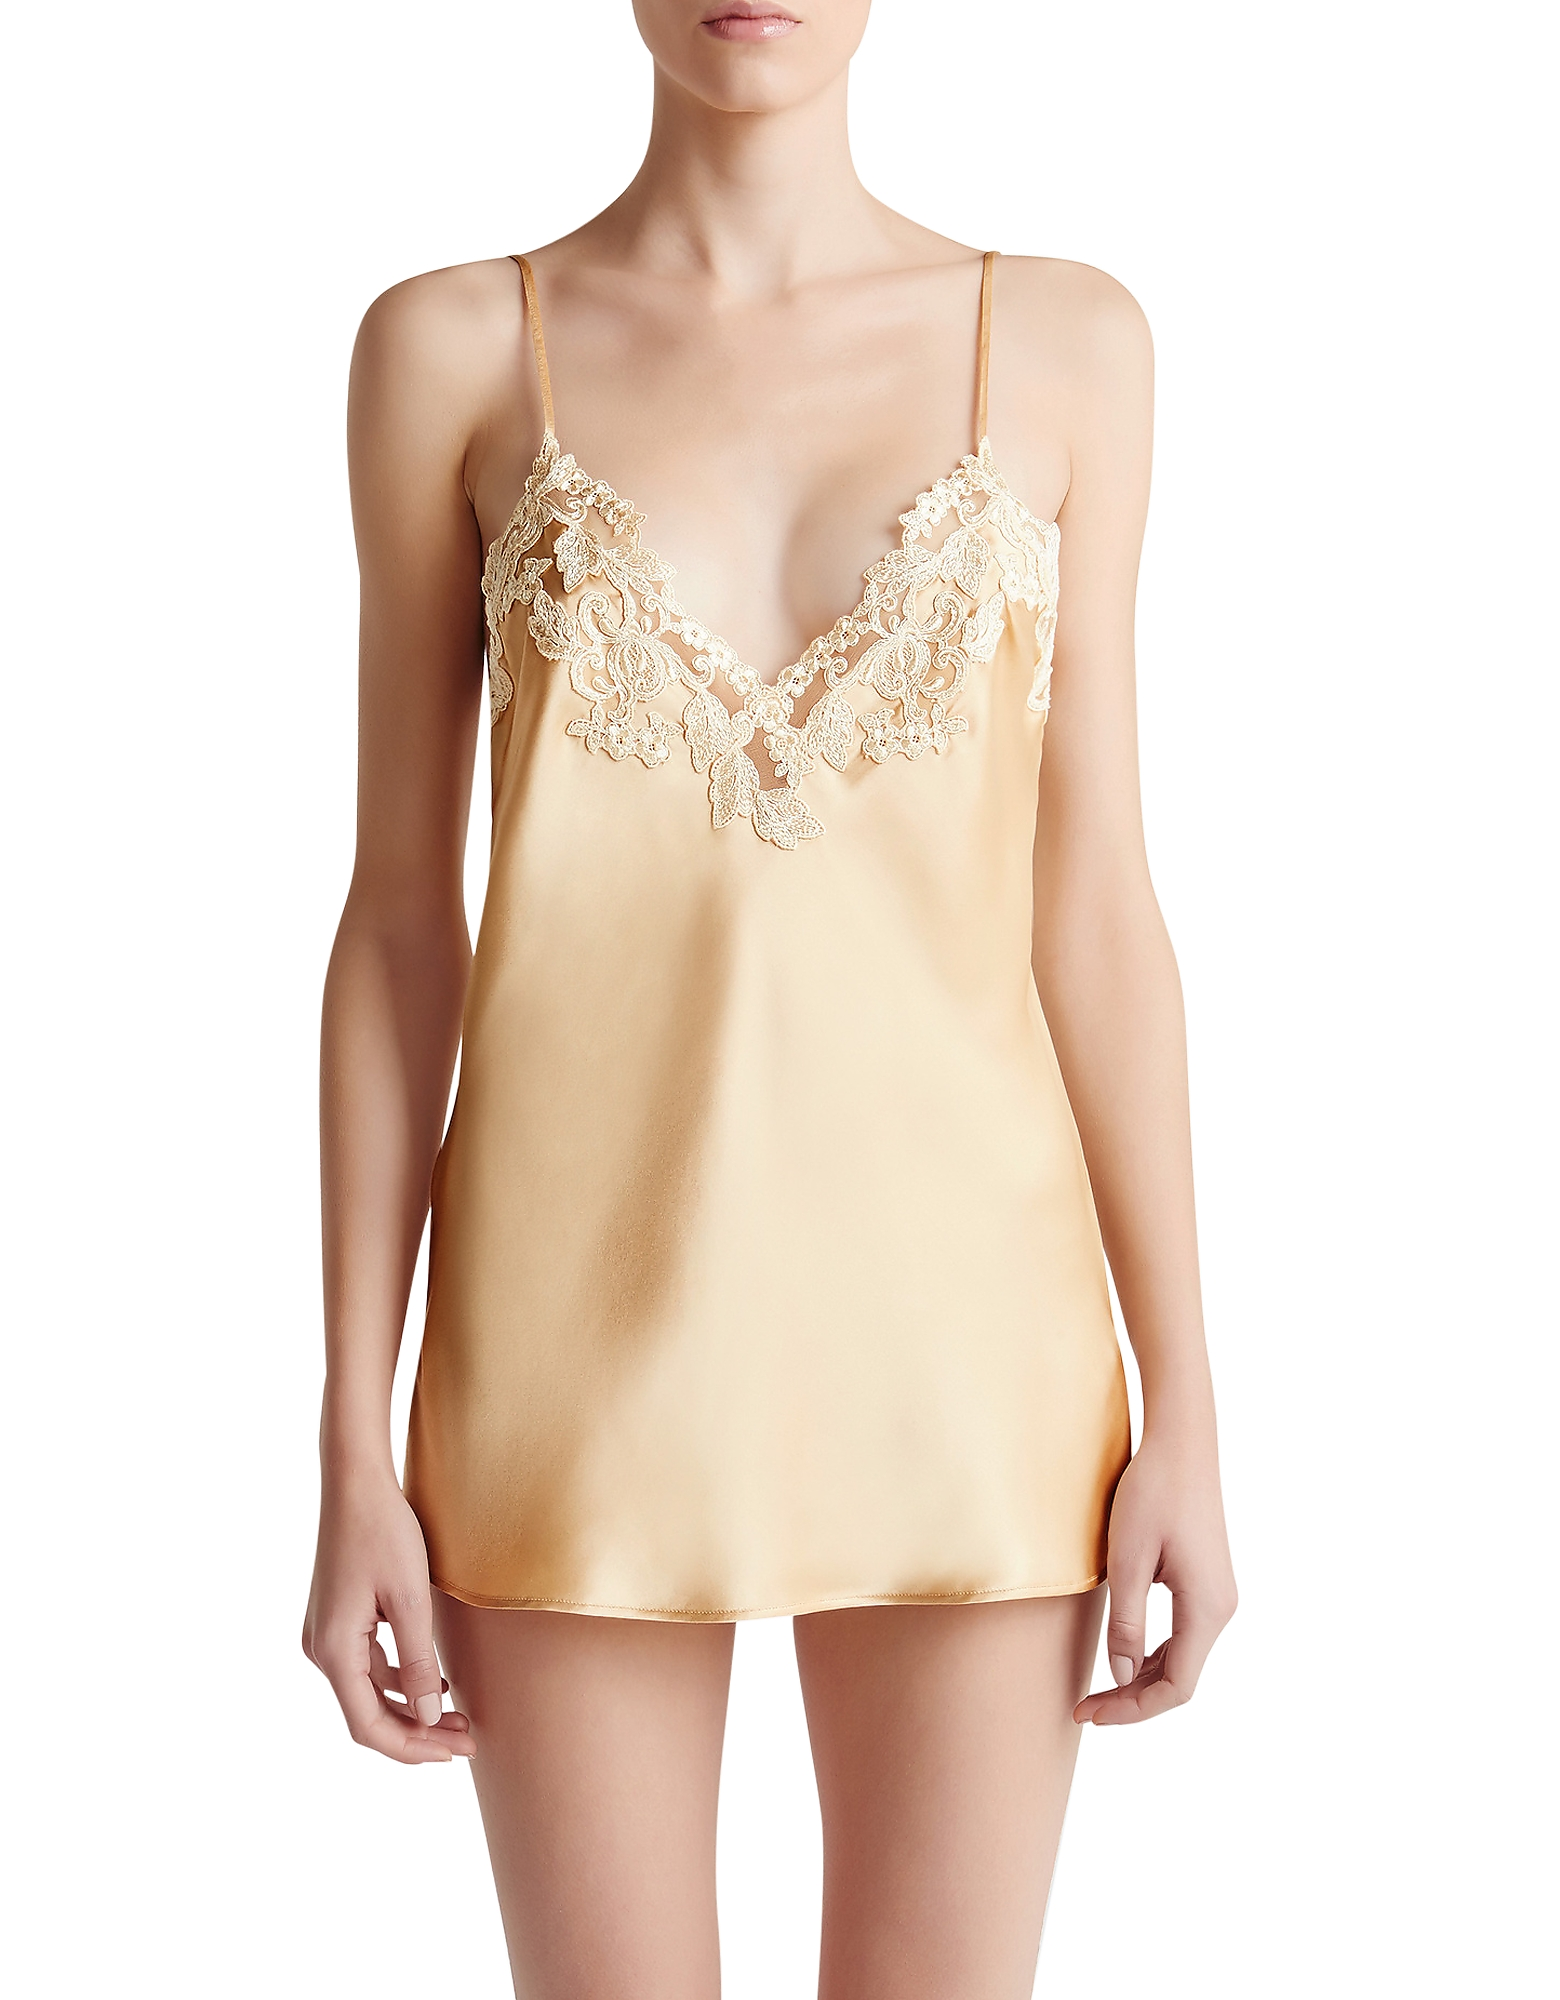 La Perla Tops, Maison Beige Silk Satin Top